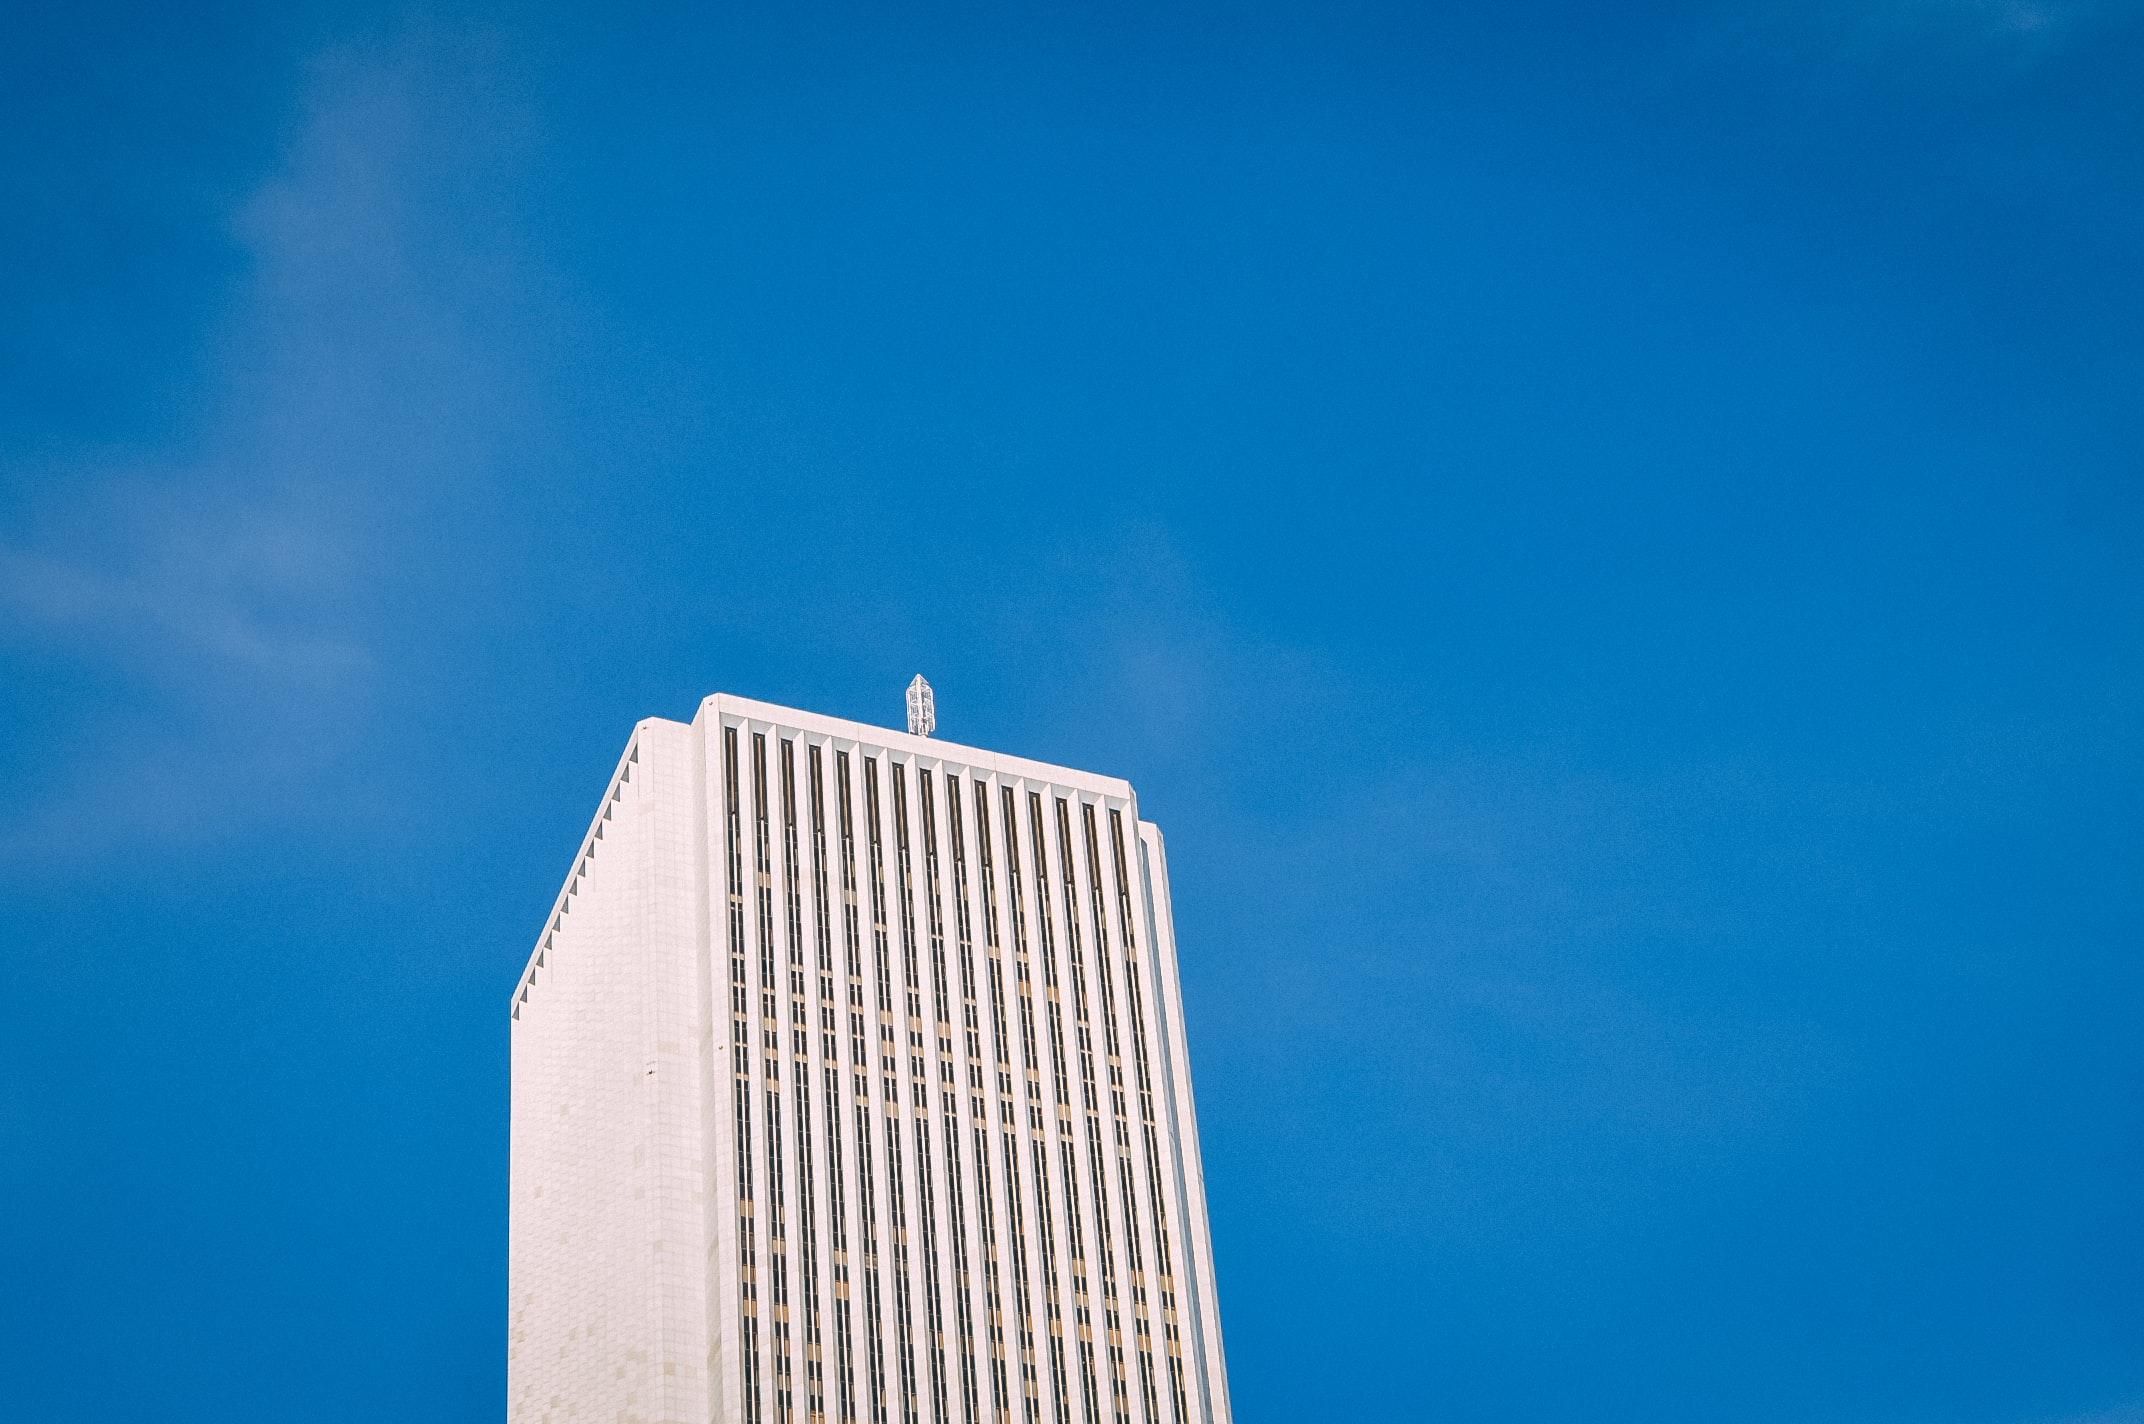 low angle photo of white high-rise building under blue sky